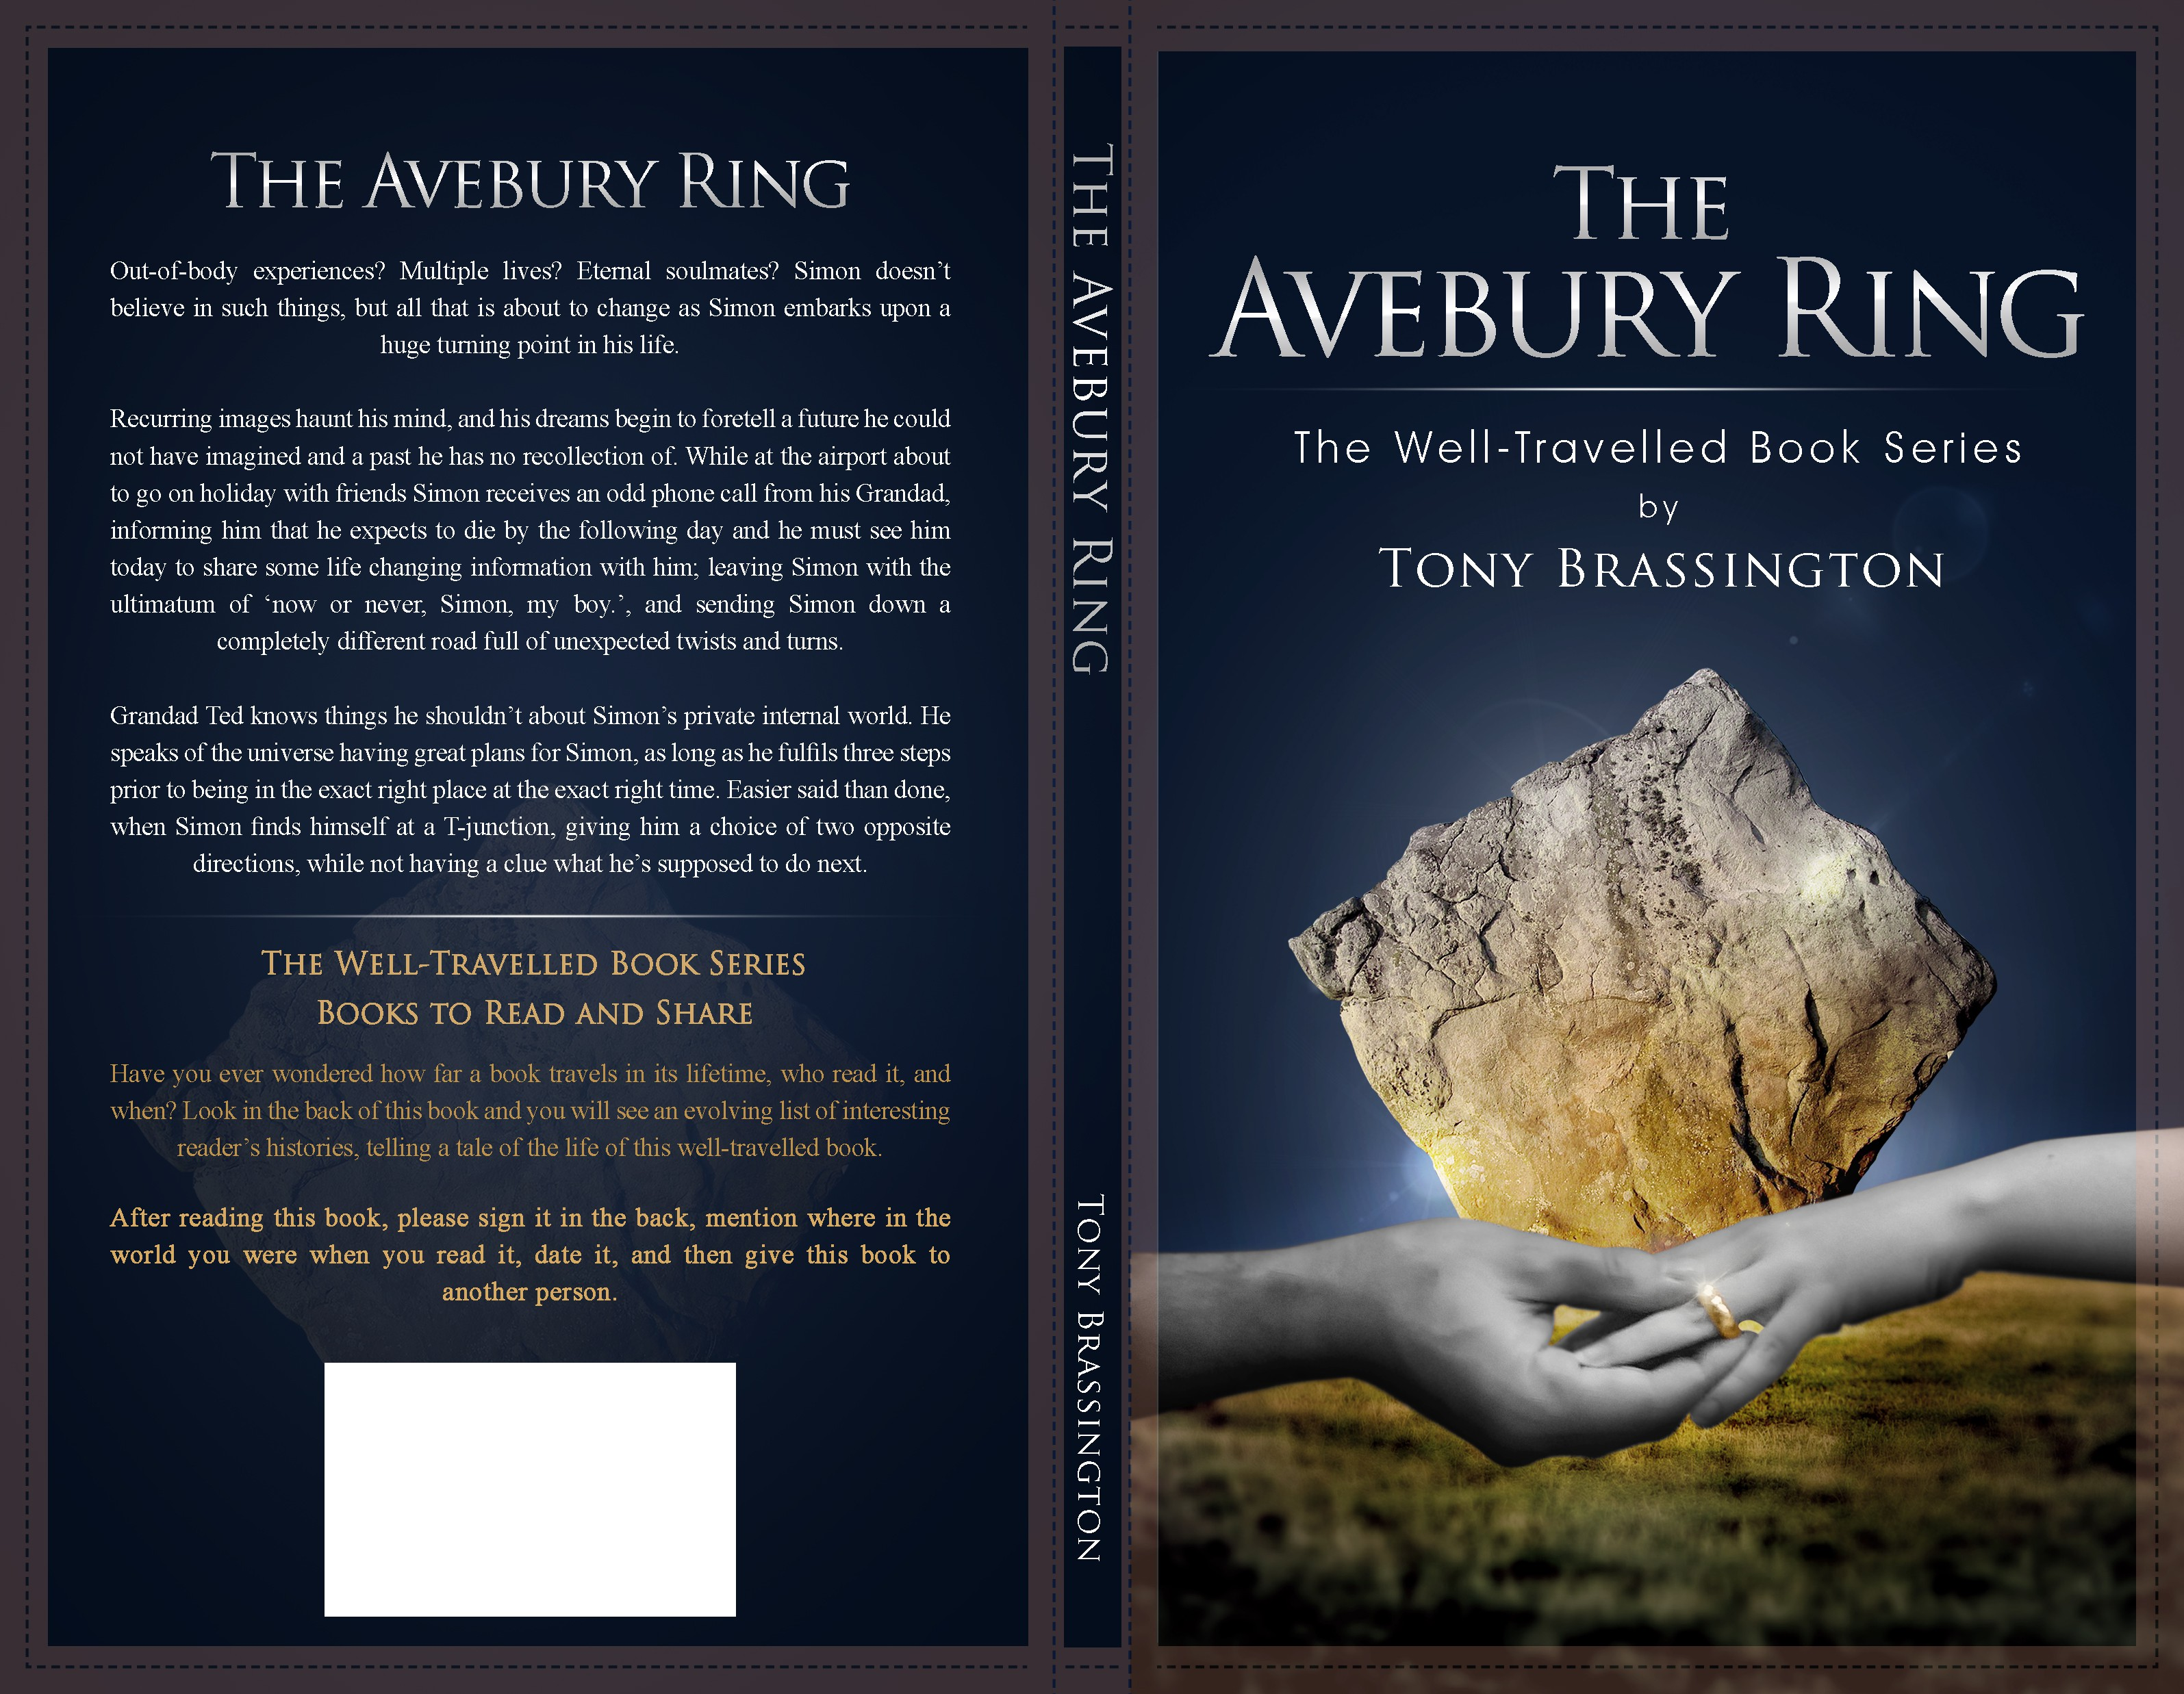 The Avebury Ring - Quality Book Cover